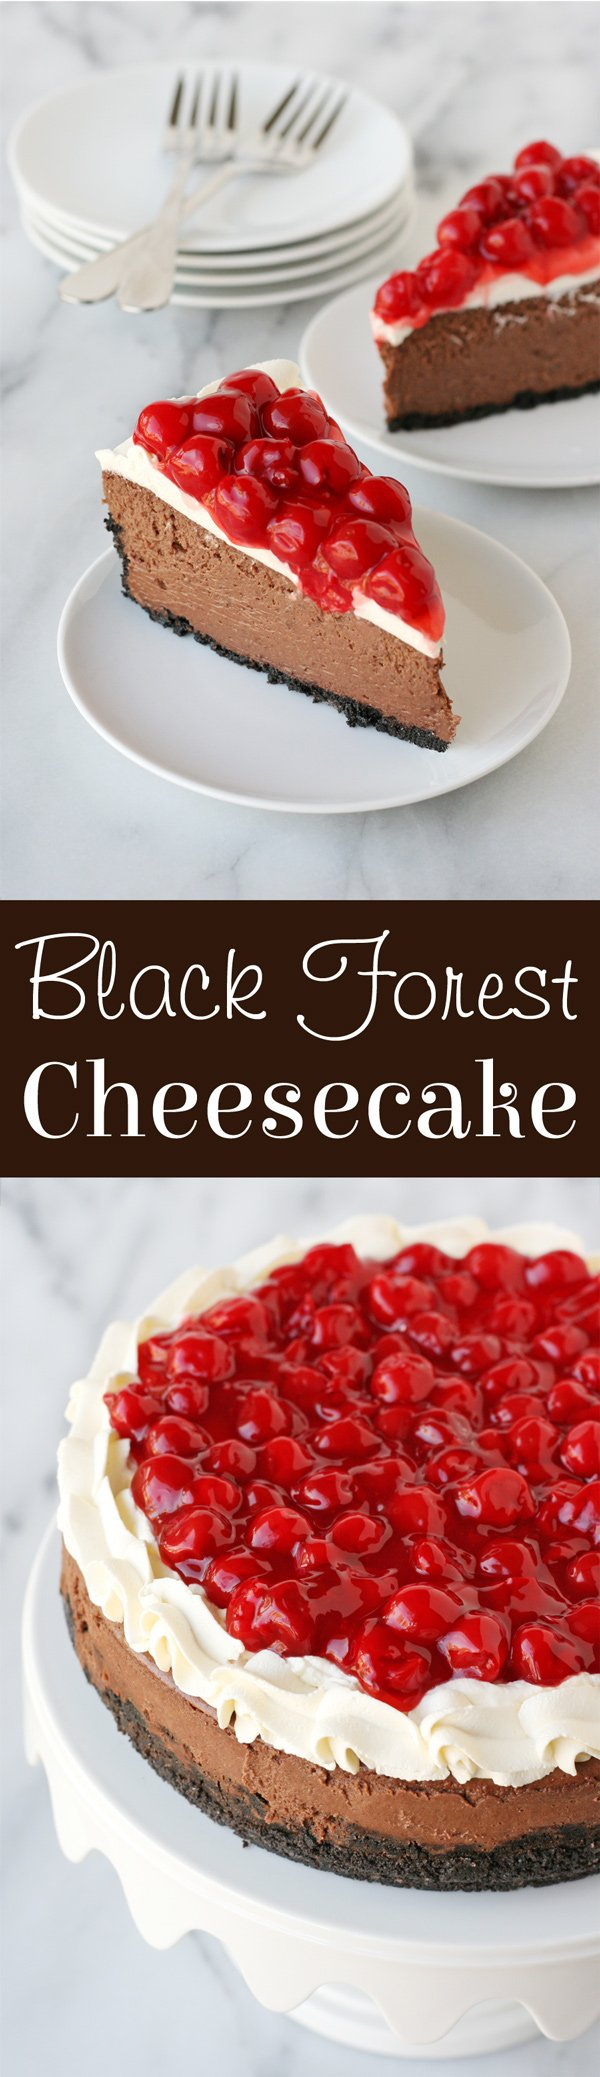 Incredibly impressive and delicious Black Forest Cheesecake!